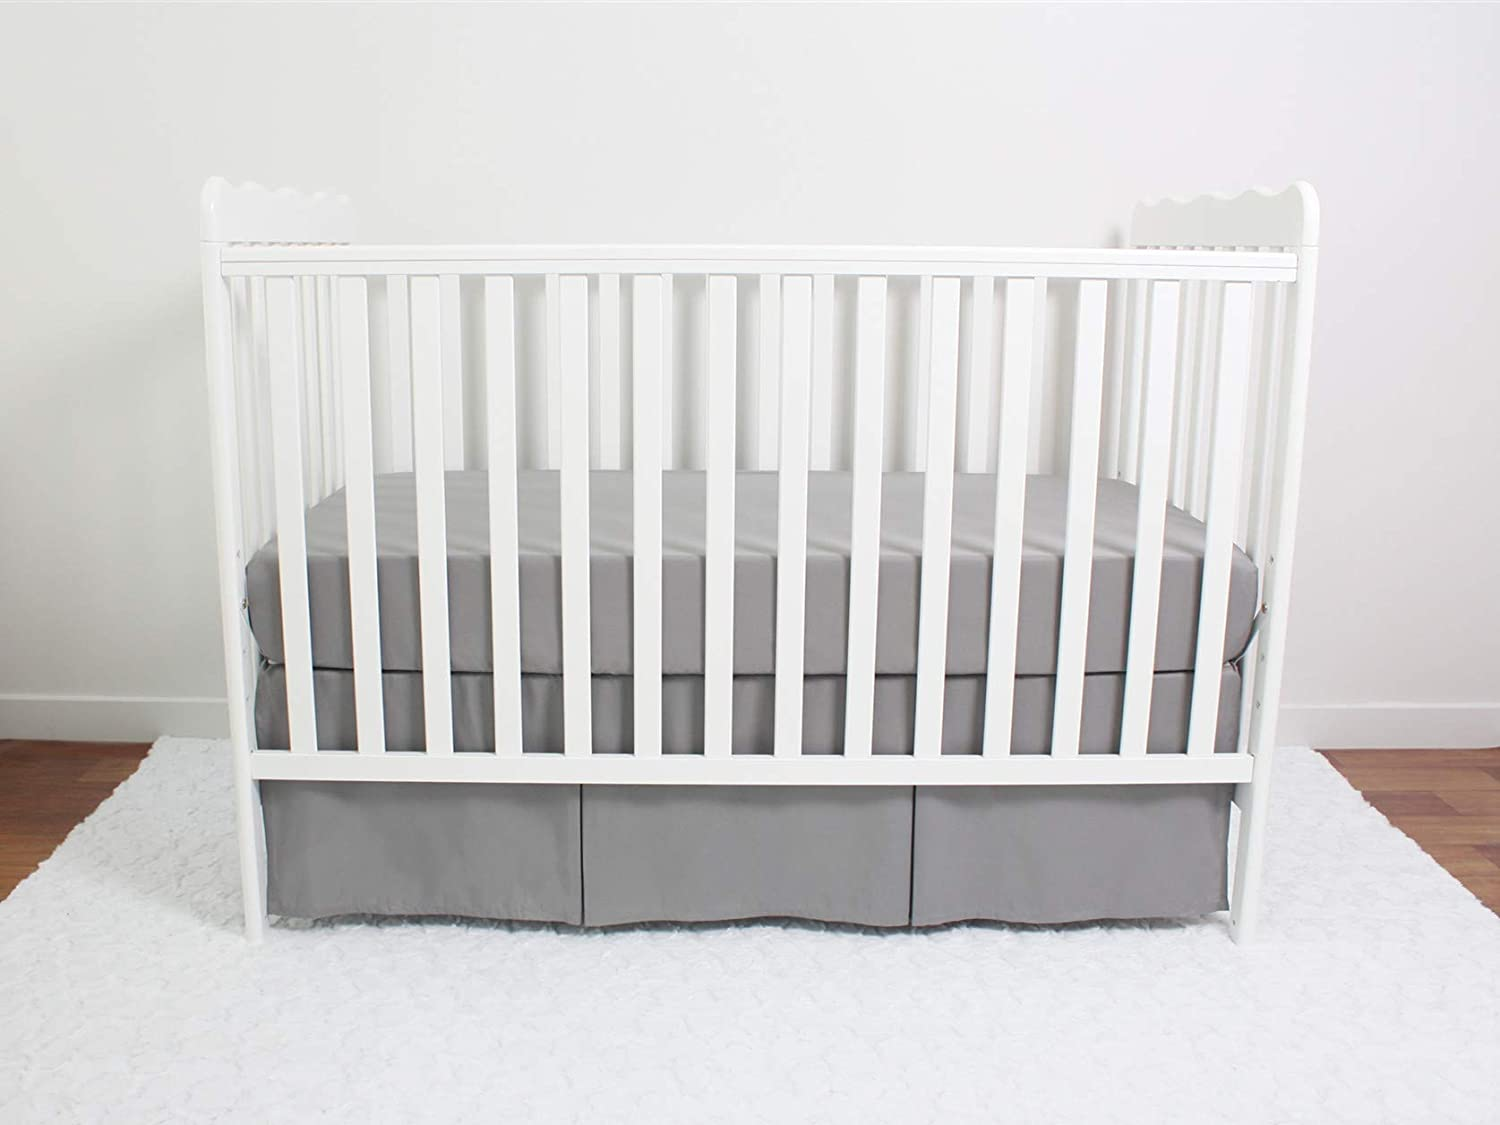 CaSaJa Classic Microfiber Crib Skirt with One Side Pleated Soft Breathable Dust Ruffle Fits Standard Crib and Toddler Bed 14 inchs Drop Grey Neutral Color for Baby Boys and Girls